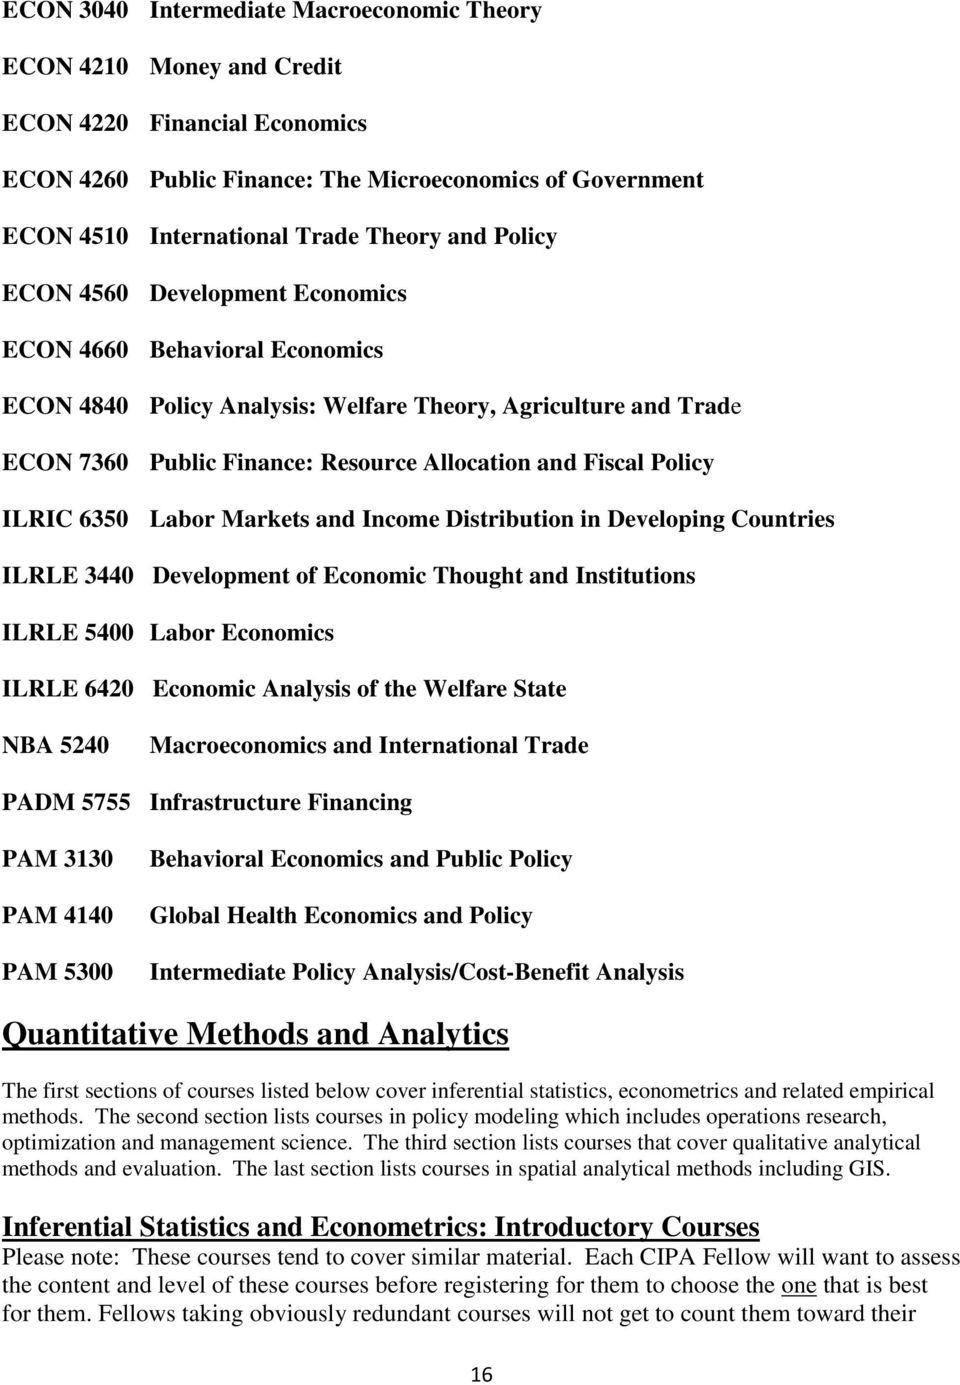 Policy ILRIC 6350 Labor Markets and Income Distribution in Developing Countries ILRLE 3440 Development of Economic Thought and Institutions ILRLE 5400 Labor Economics ILRLE 6420 Economic Analysis of